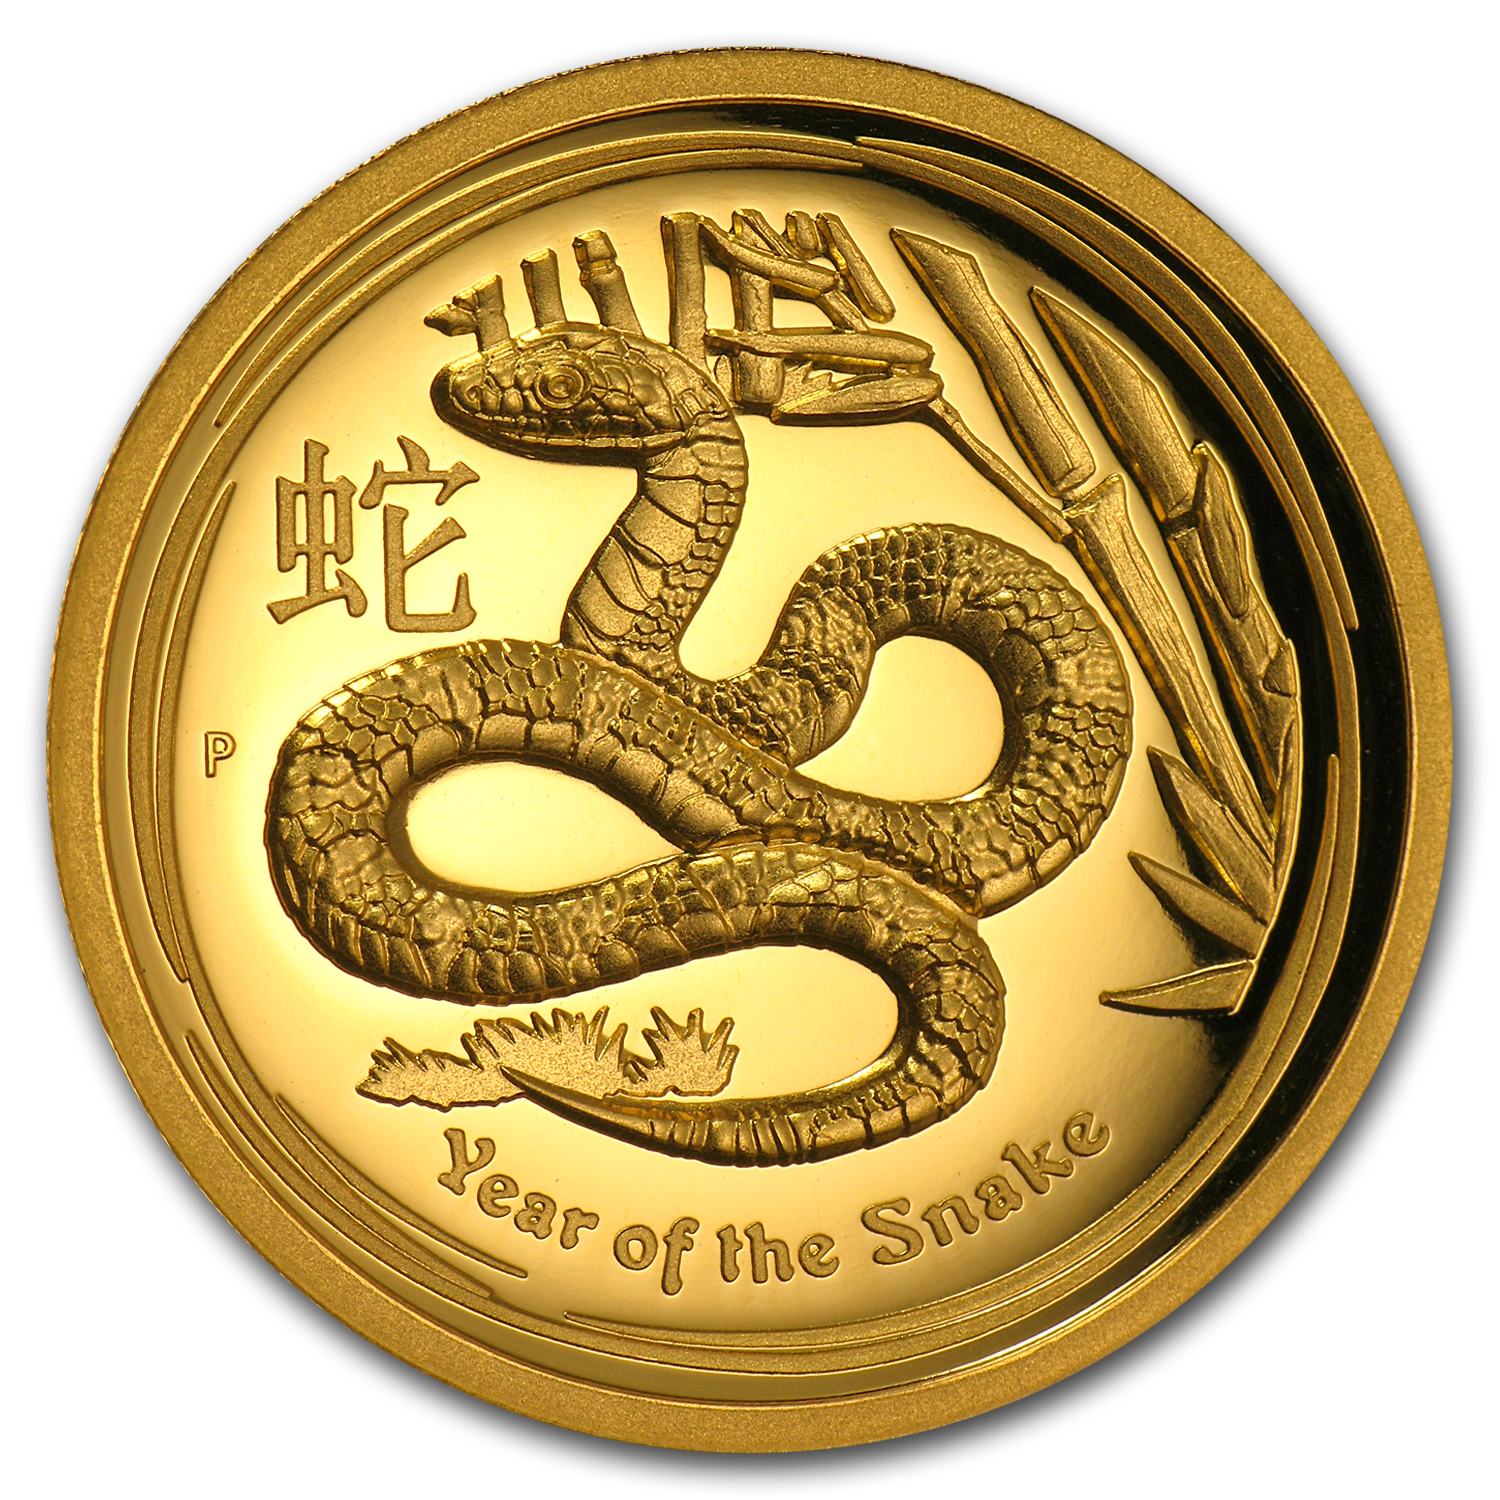 2013 Australia 1 oz Gold Lunar Snake Proof (UHR, Box & Coa)